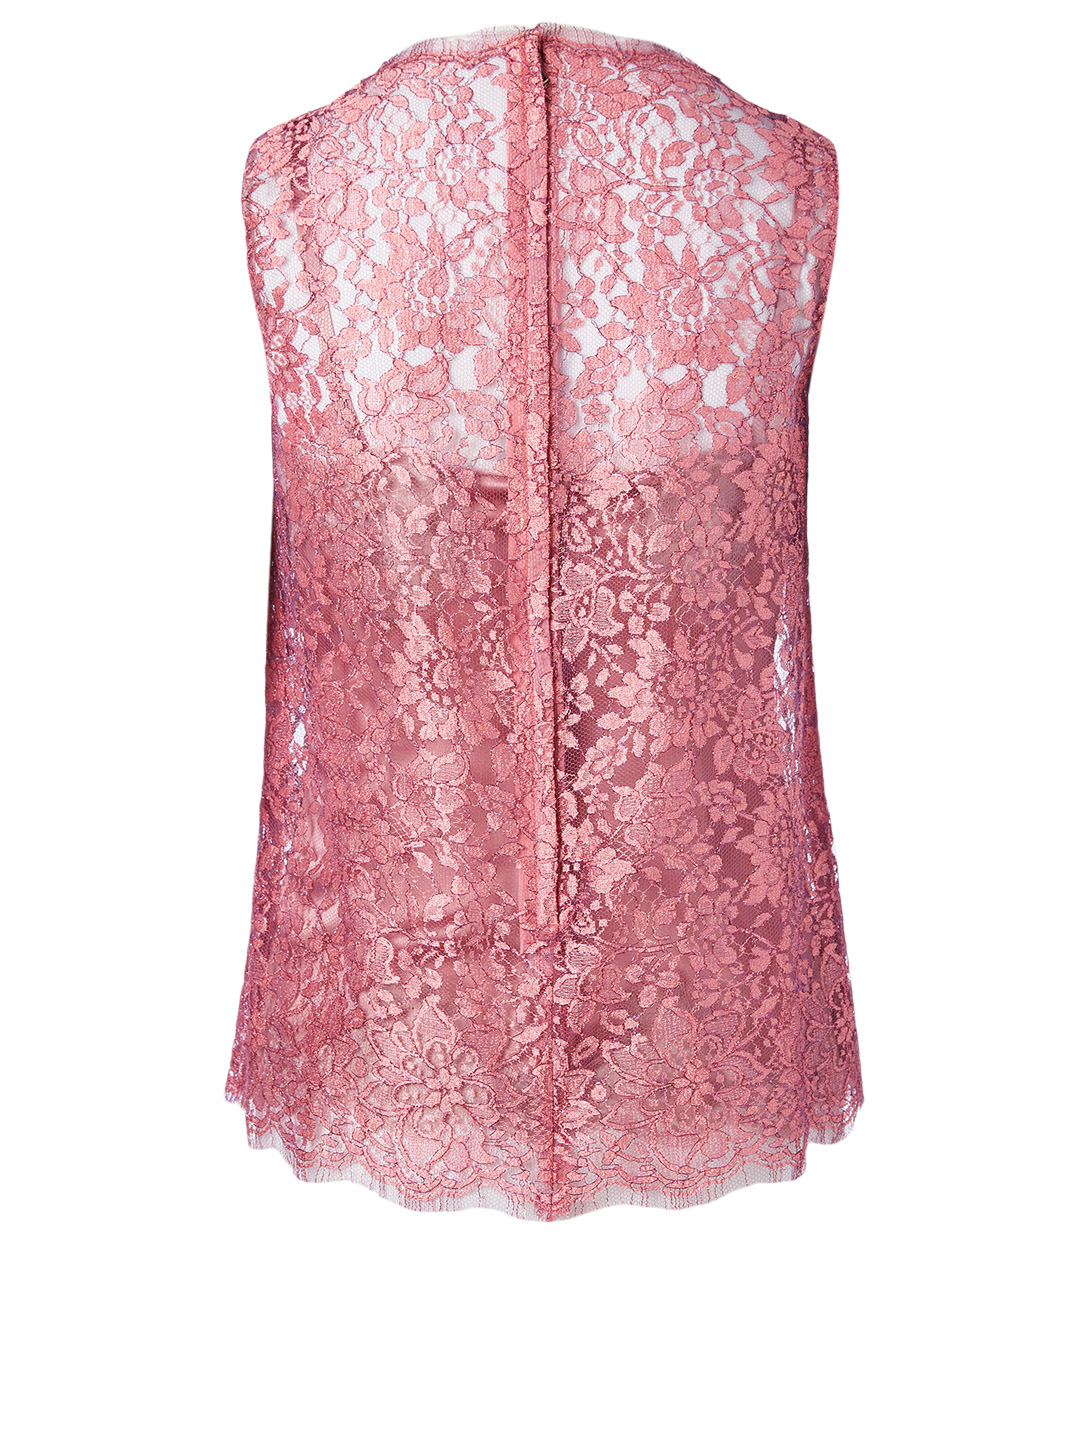 DOLCE & GABBANA Chantilly Lamé Lace Top Women's Purple